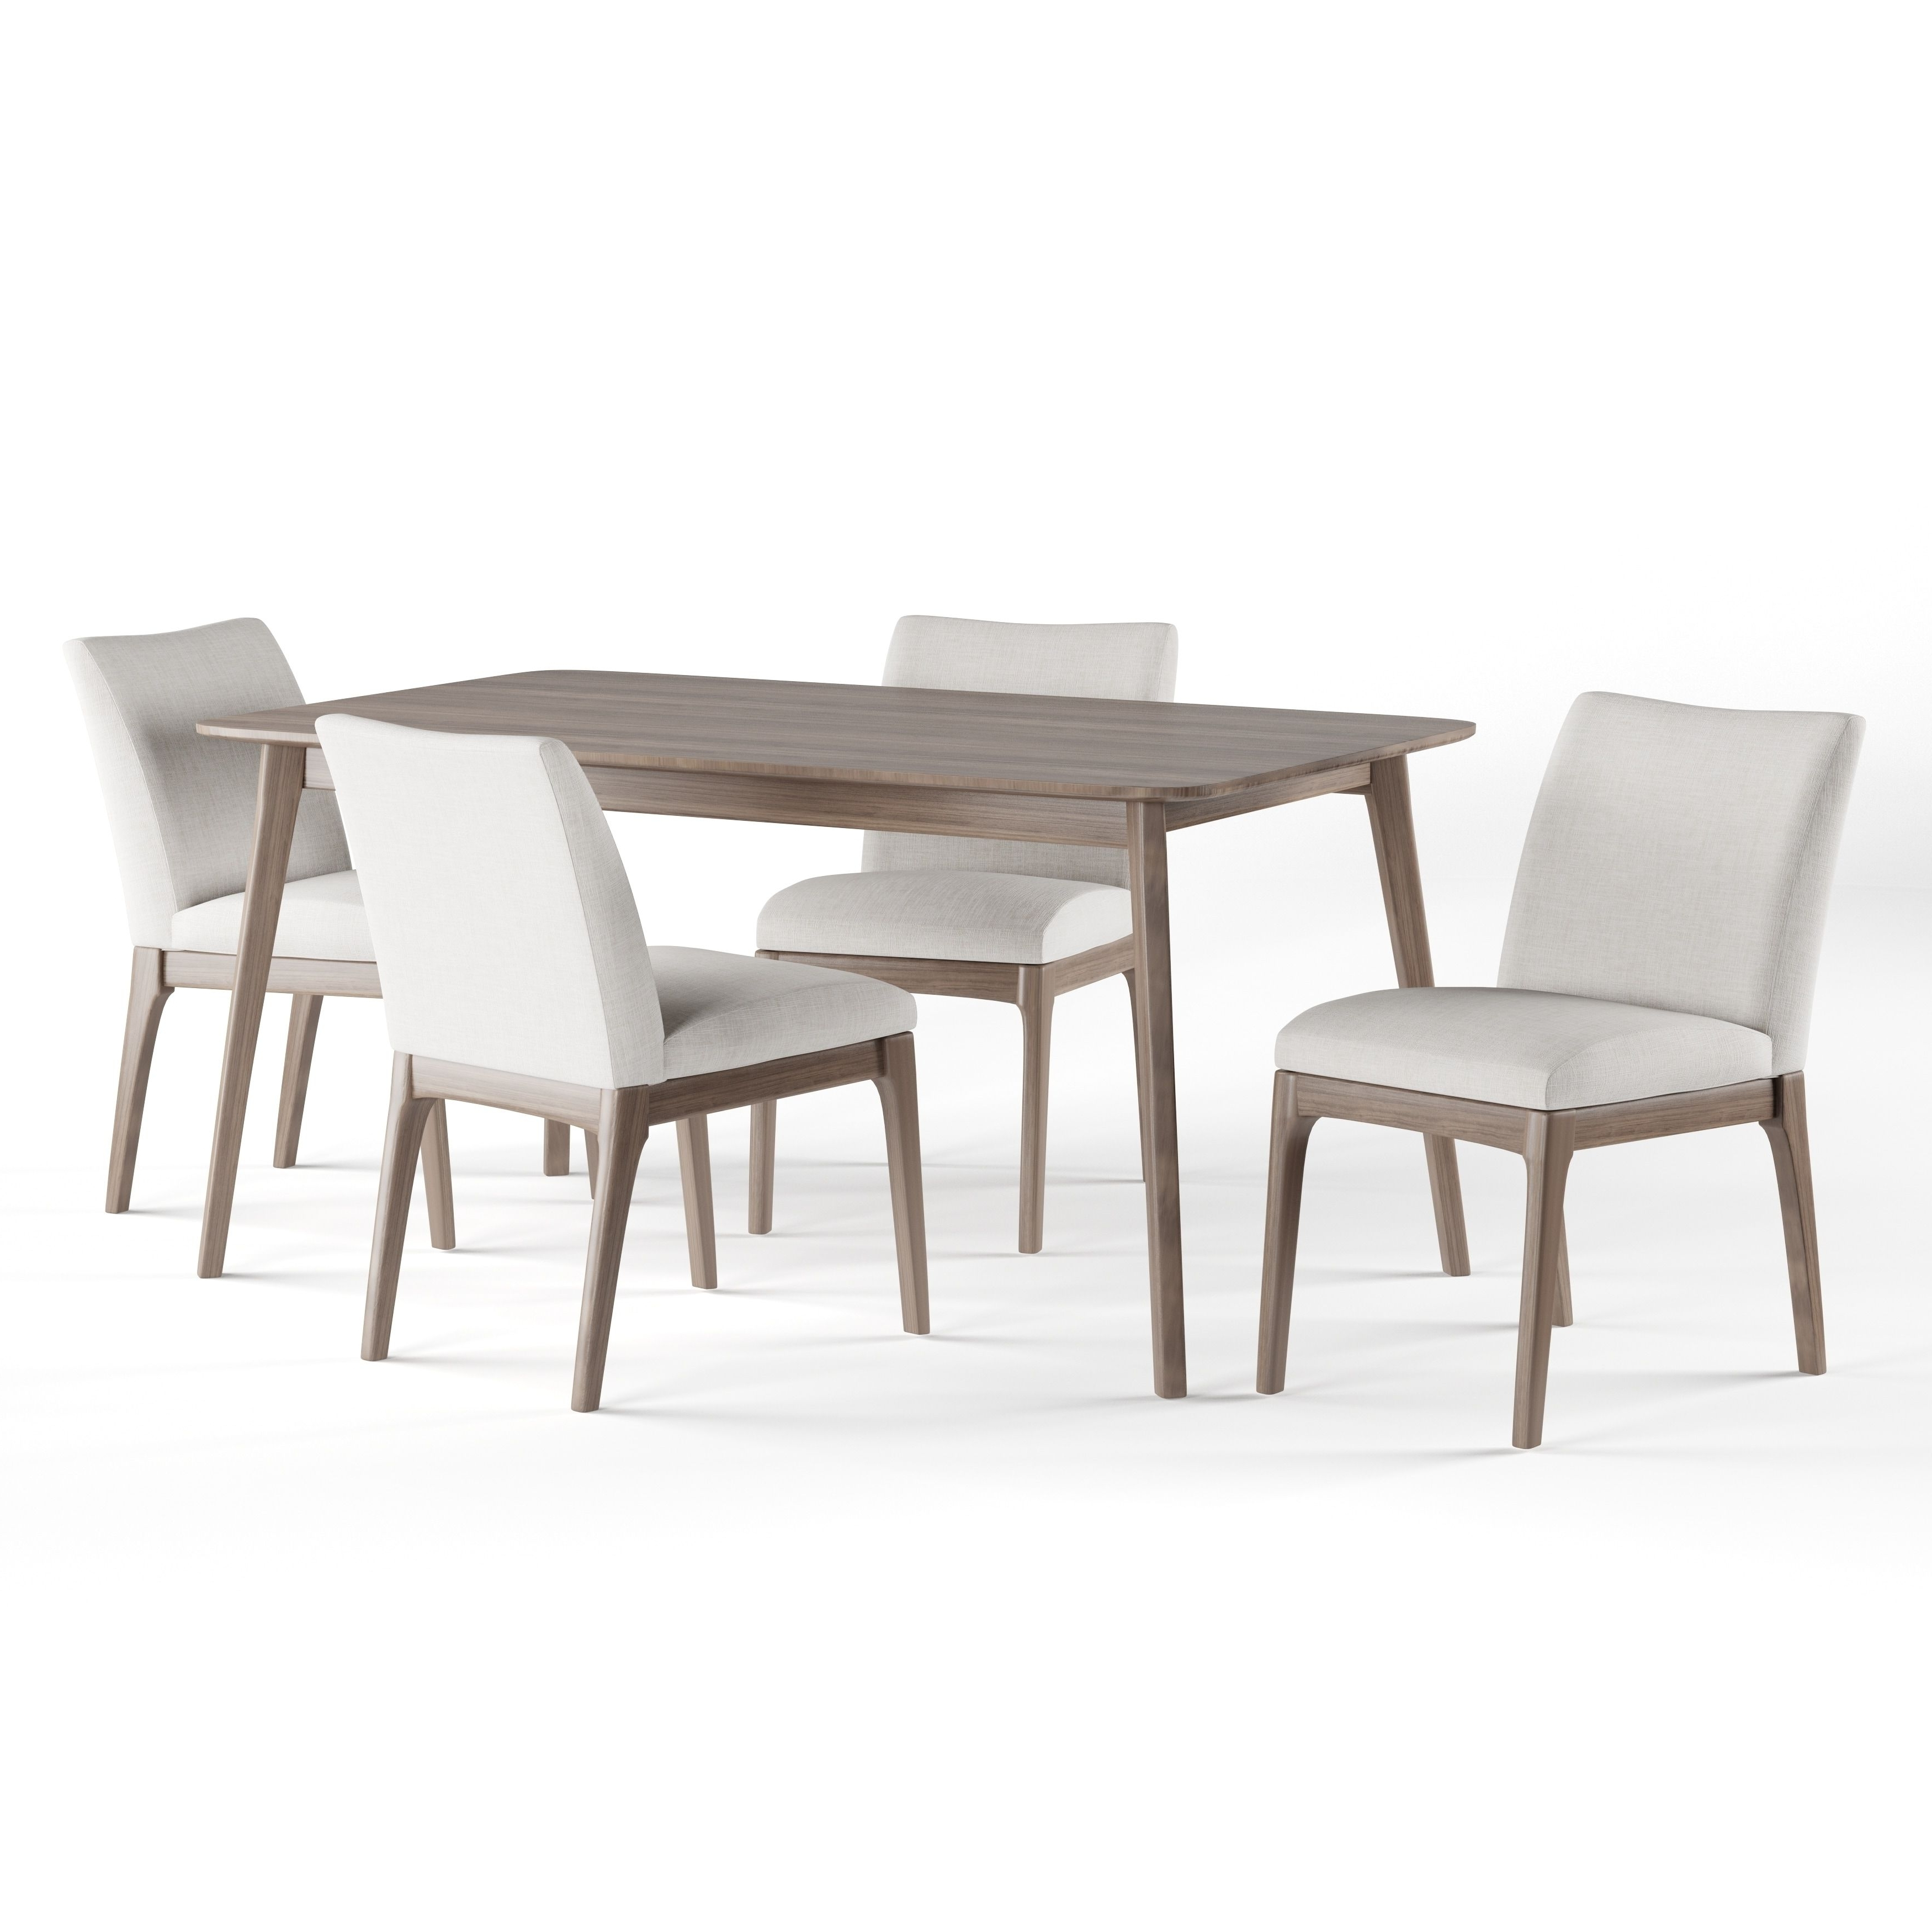 Toby 7 Piece Dining Setorren Ellis Reviews Regarding Preferred Helms 5 Piece Round Dining Sets With Side Chairs (View 5 of 25)